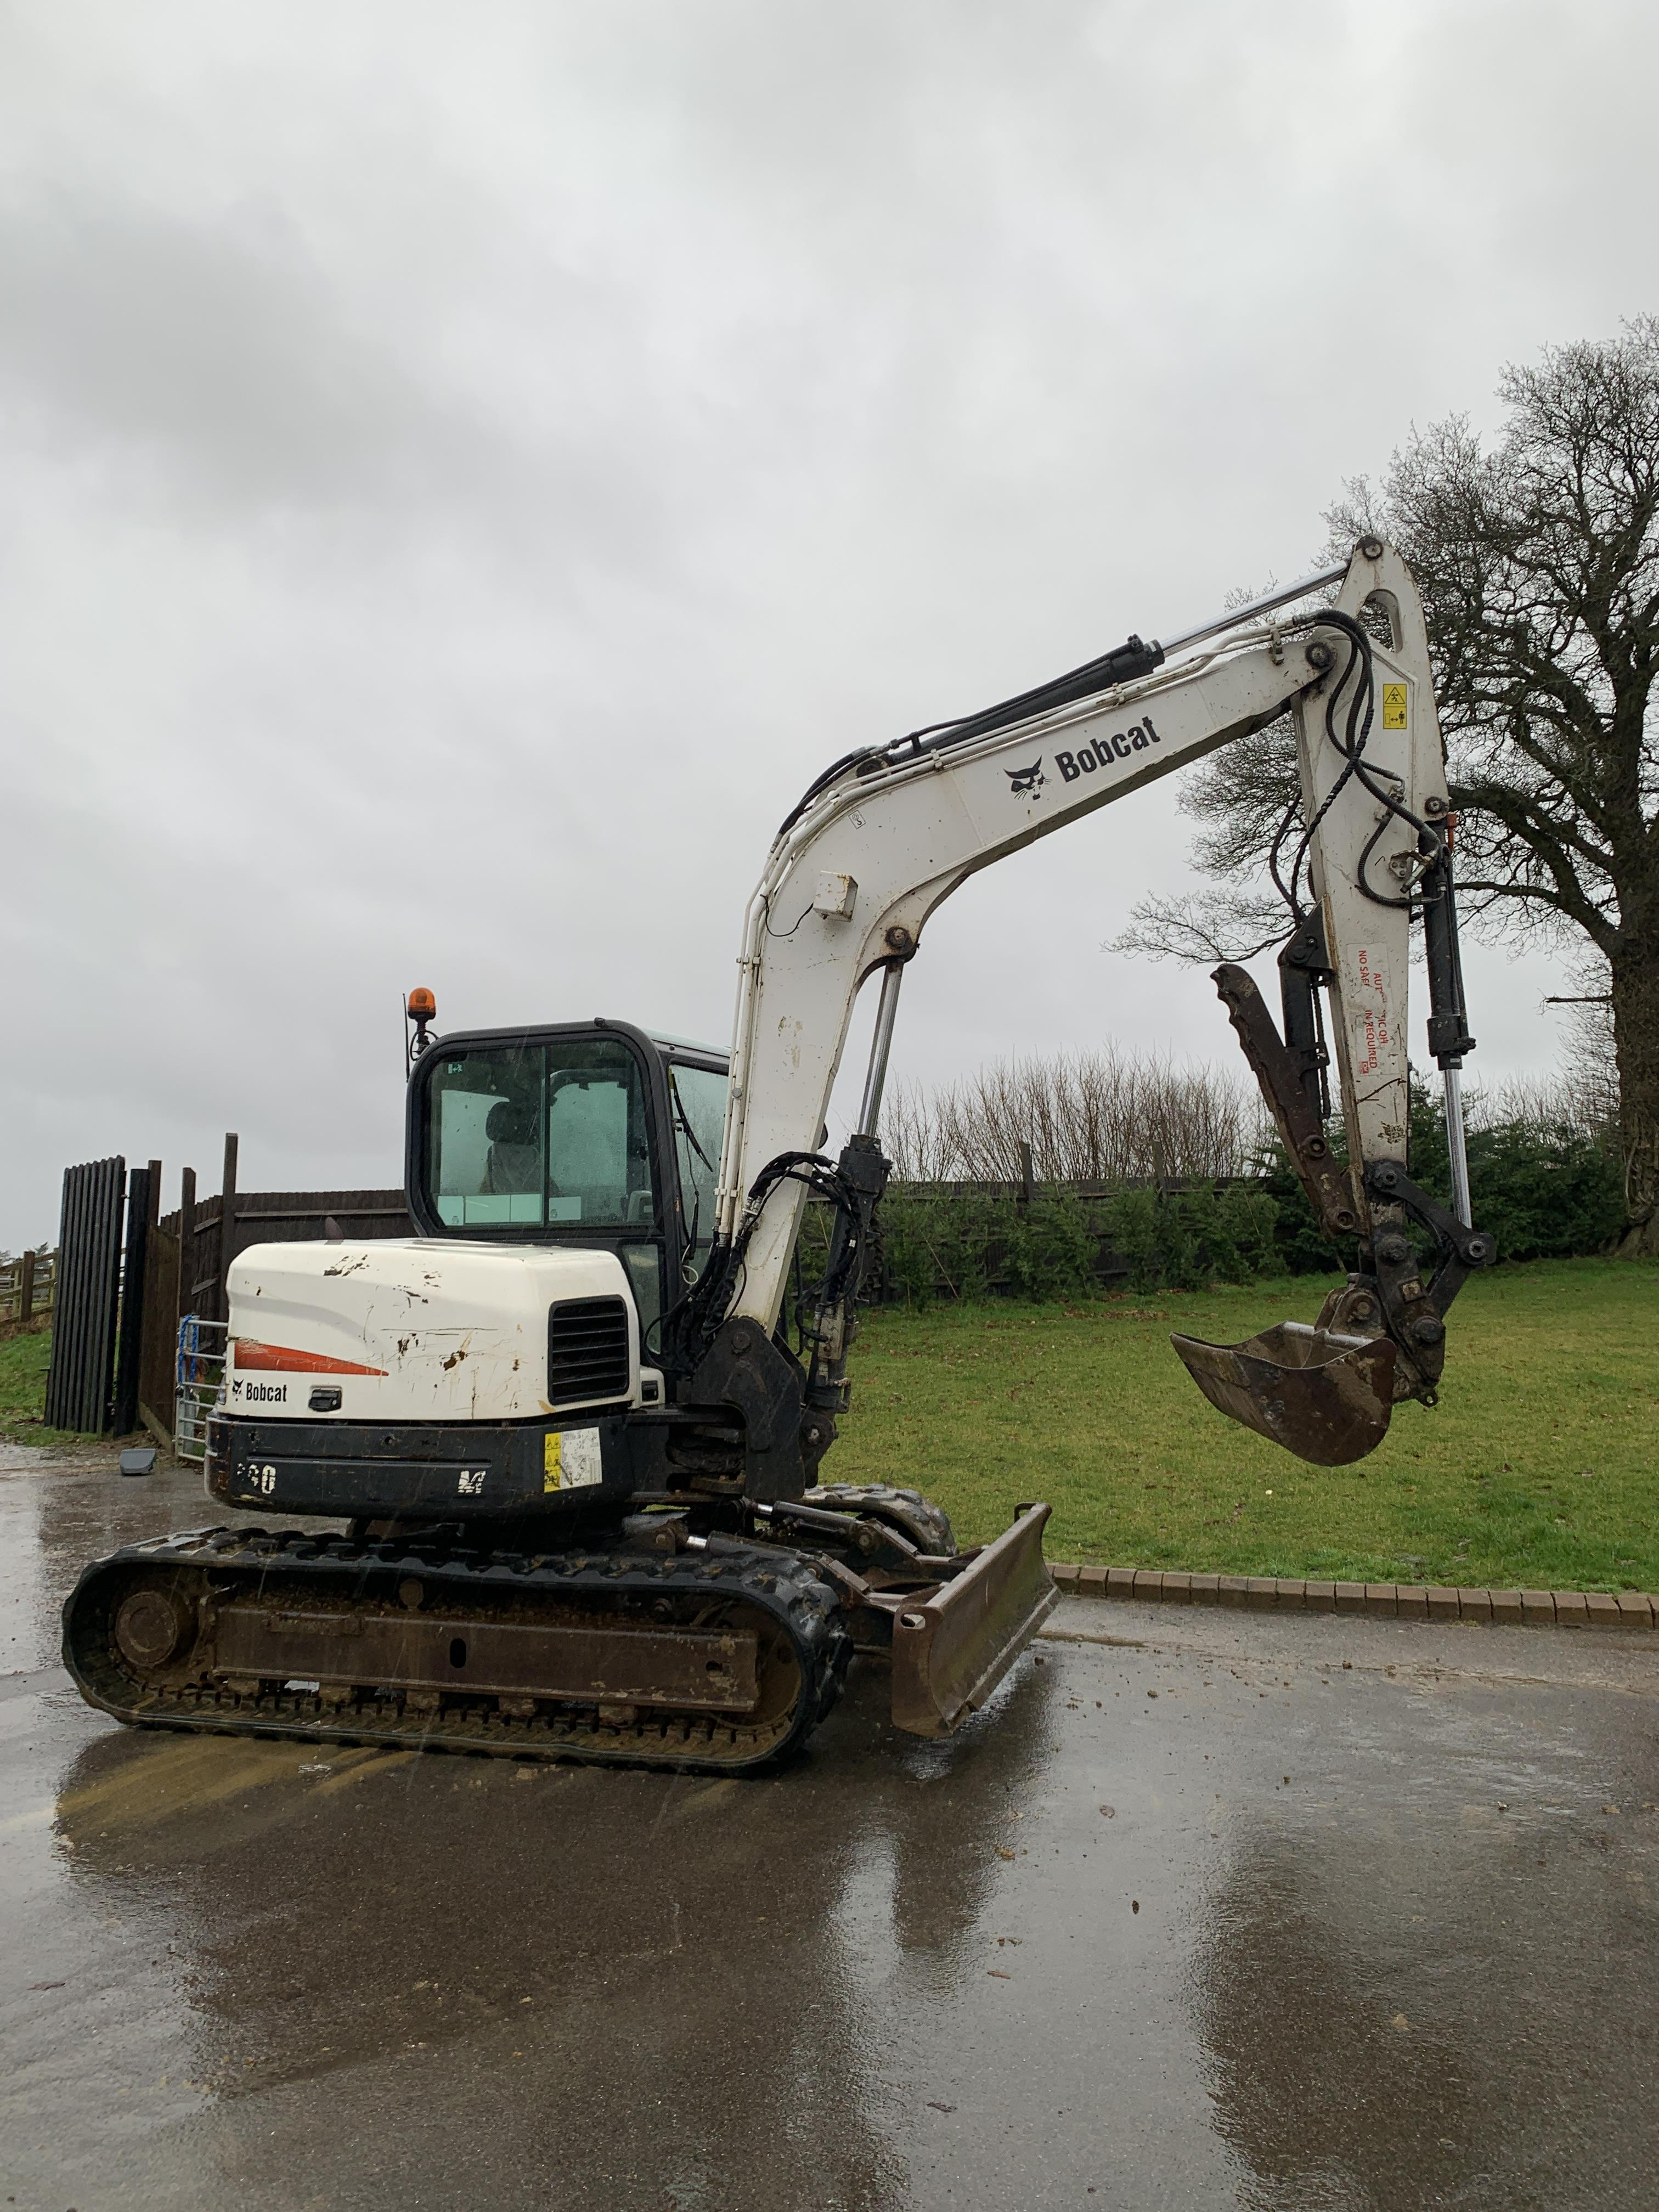 BOBCAT E80 TRACKED CRAWLER EXCAVATOR / DIGGER, C/W HYDRAULIC THUMB, YEAR 2012, RUNS, WORKS AND DIGS